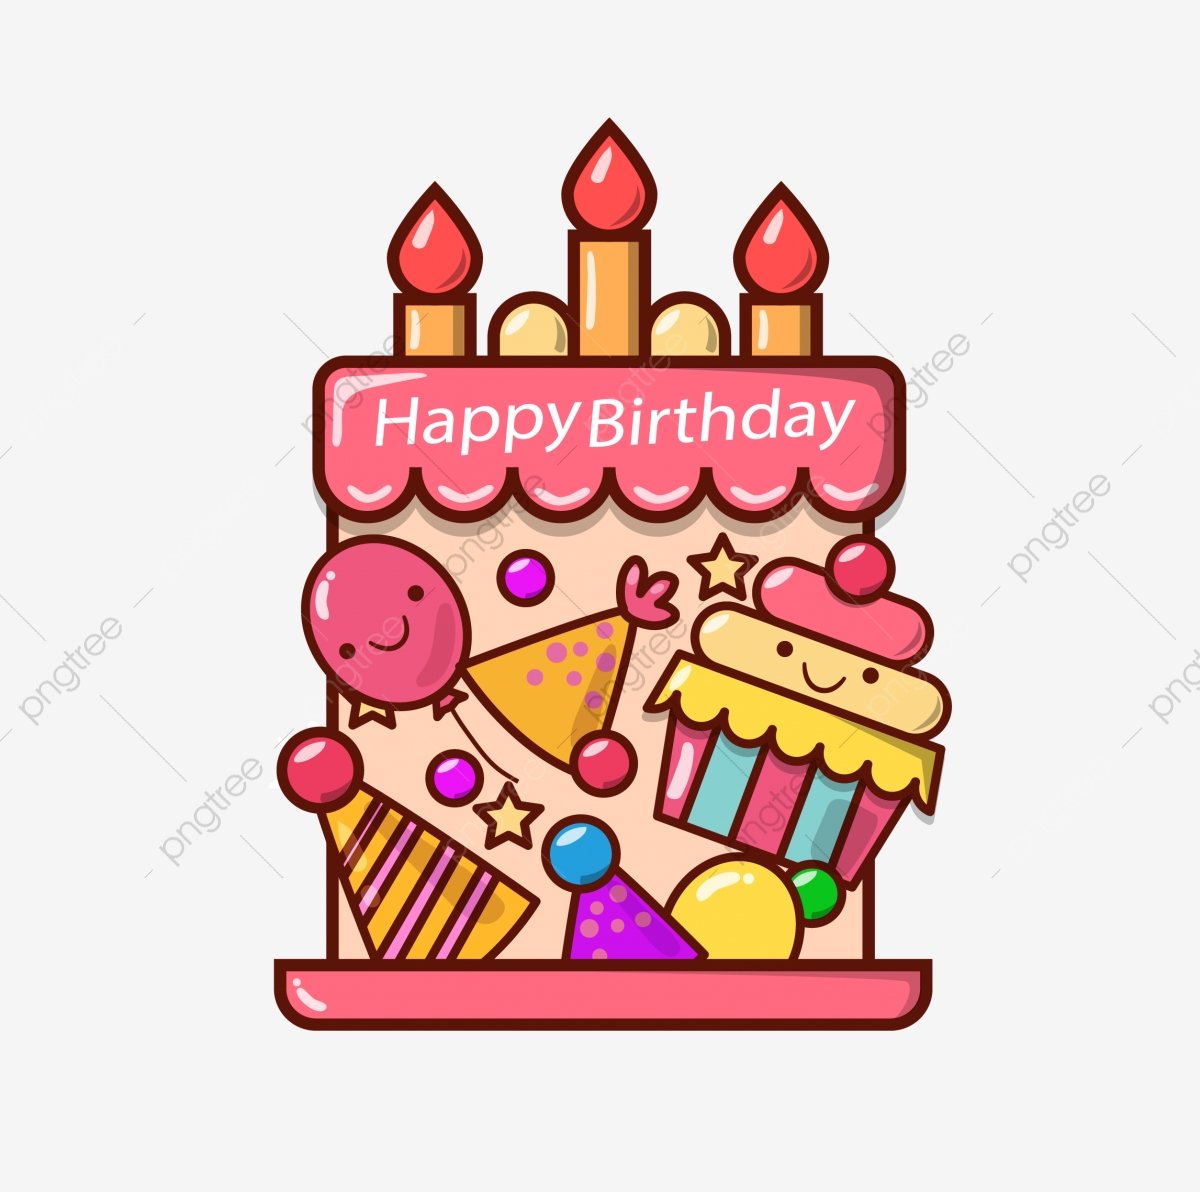 Commercial Use Resource Upgrade To Premium Plan And Get License AuthorizationUpgradeNow Cartoon Style Happy Birthday Cake